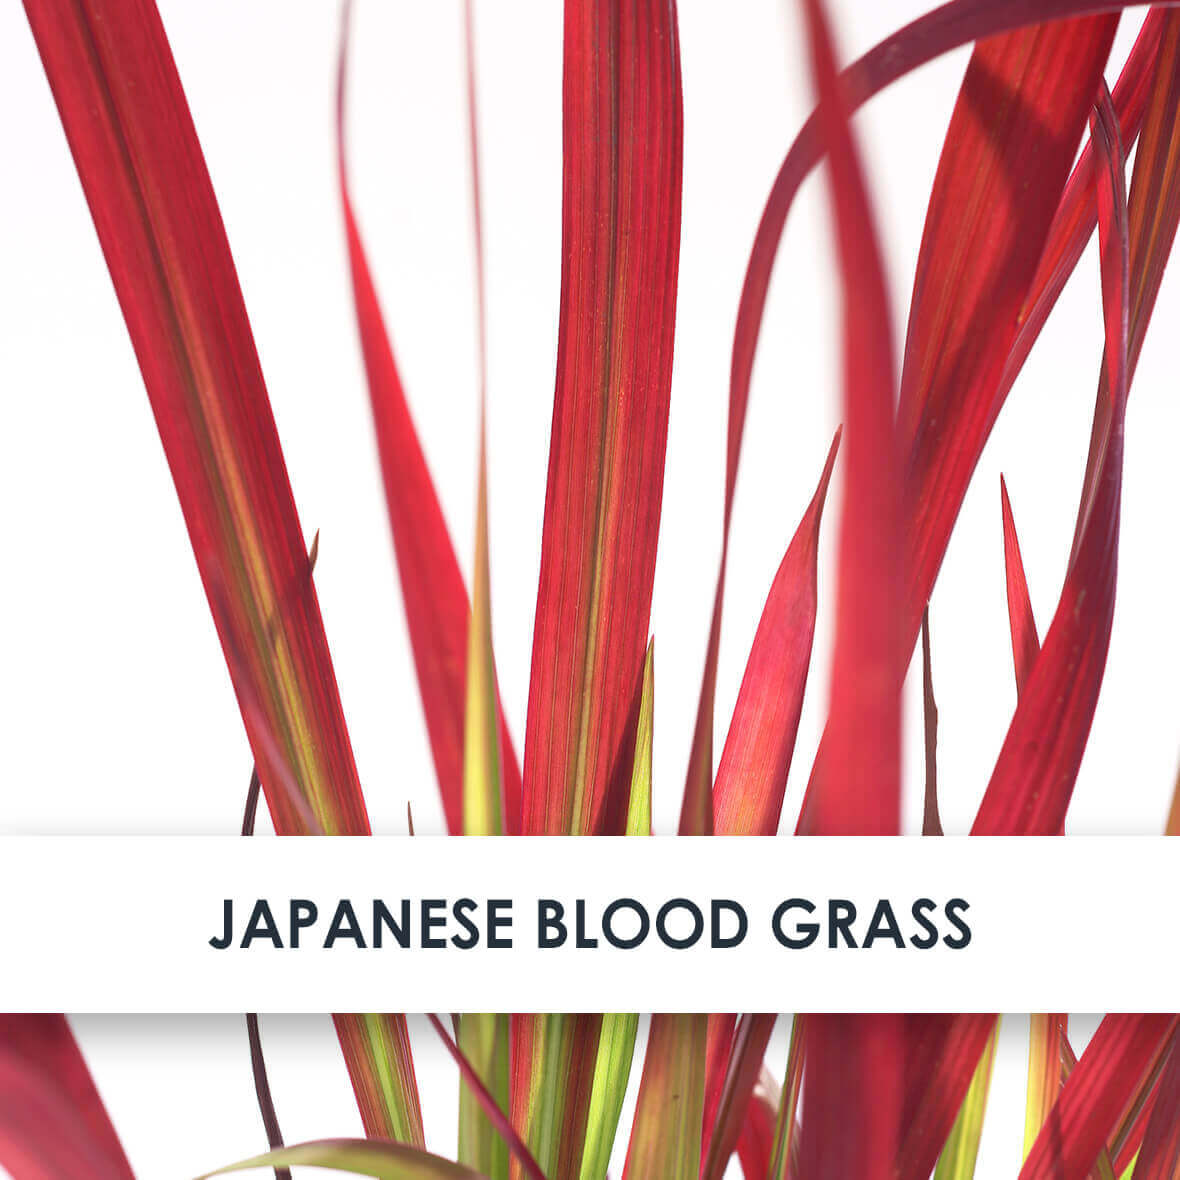 Japanese Blood Grass Skincare Benefits